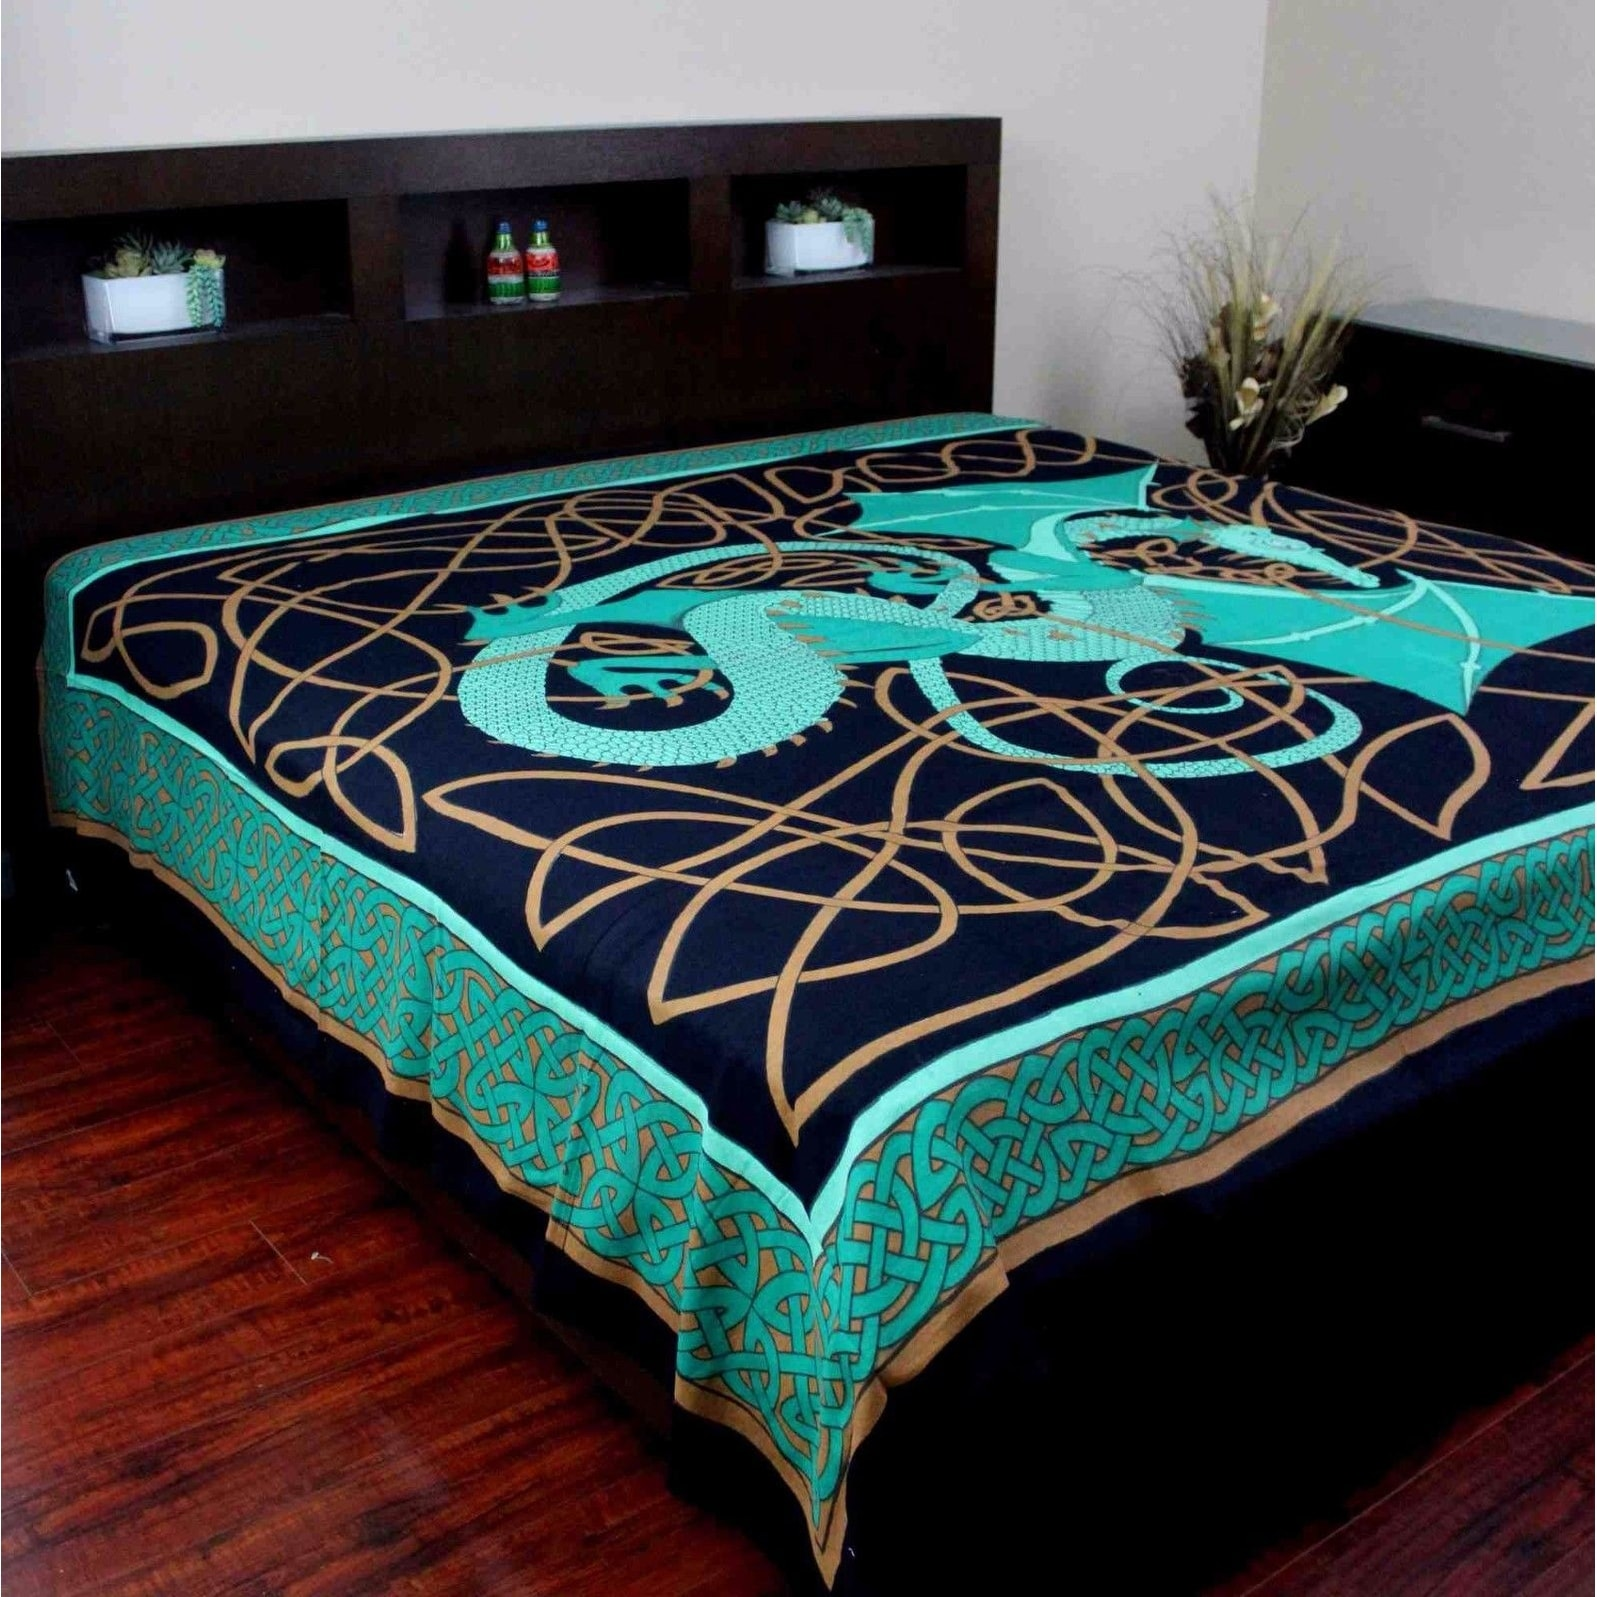 Handmade 100% Cotton Celtic Dragon Tapestry Tablecloth Bedspread Dorm Decor Beach Sheet in Brown Red Green & Blue in Twin & Full - Thumbnail 1